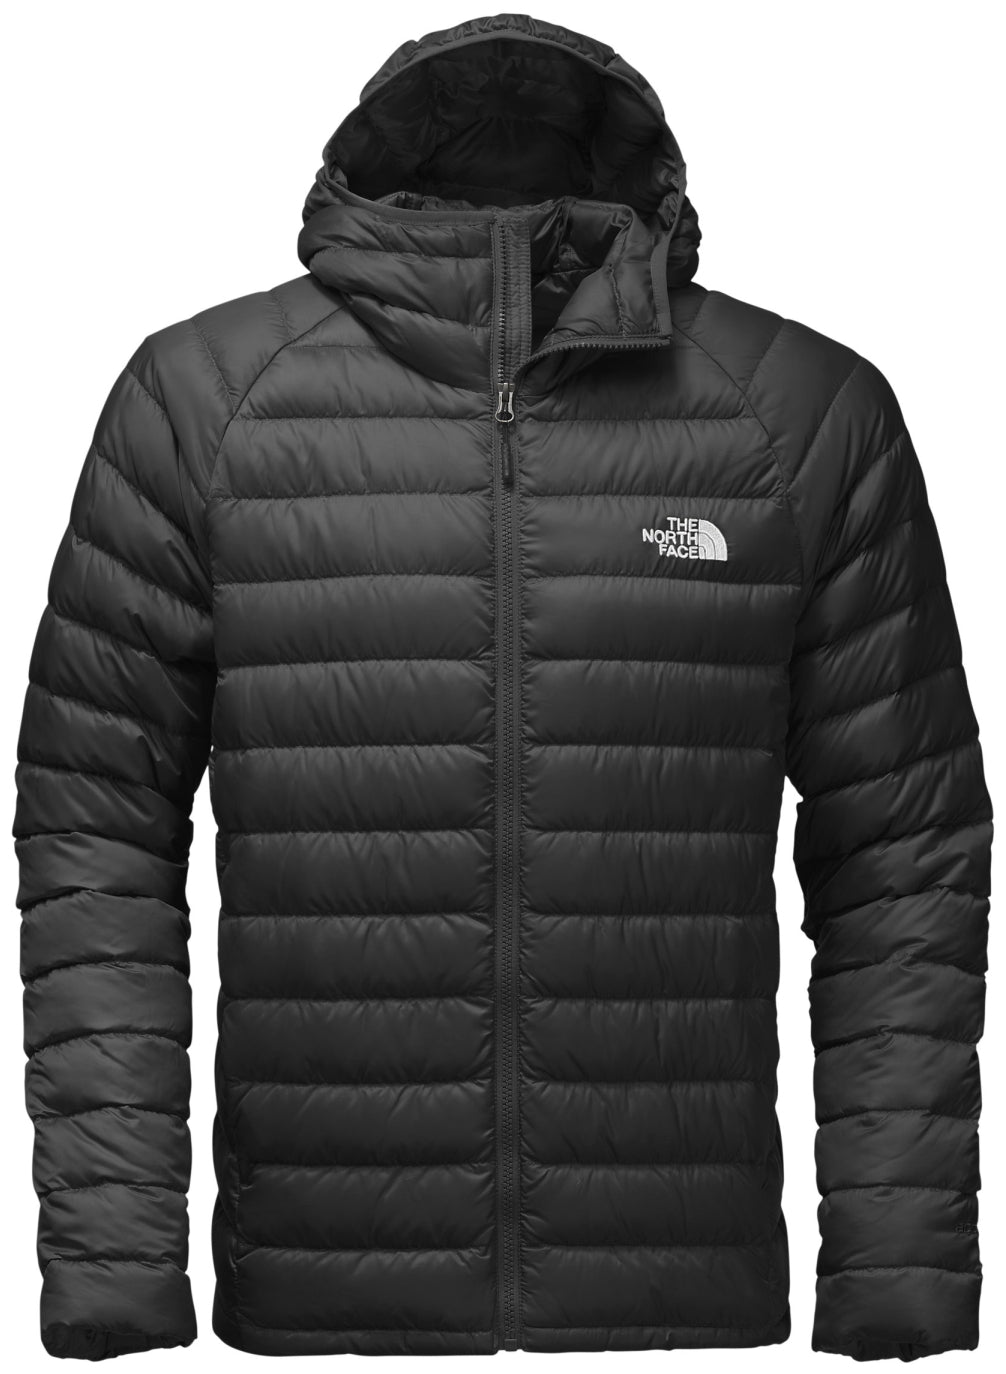 86d680e5c The North Face Trevail Hoodie - Men's